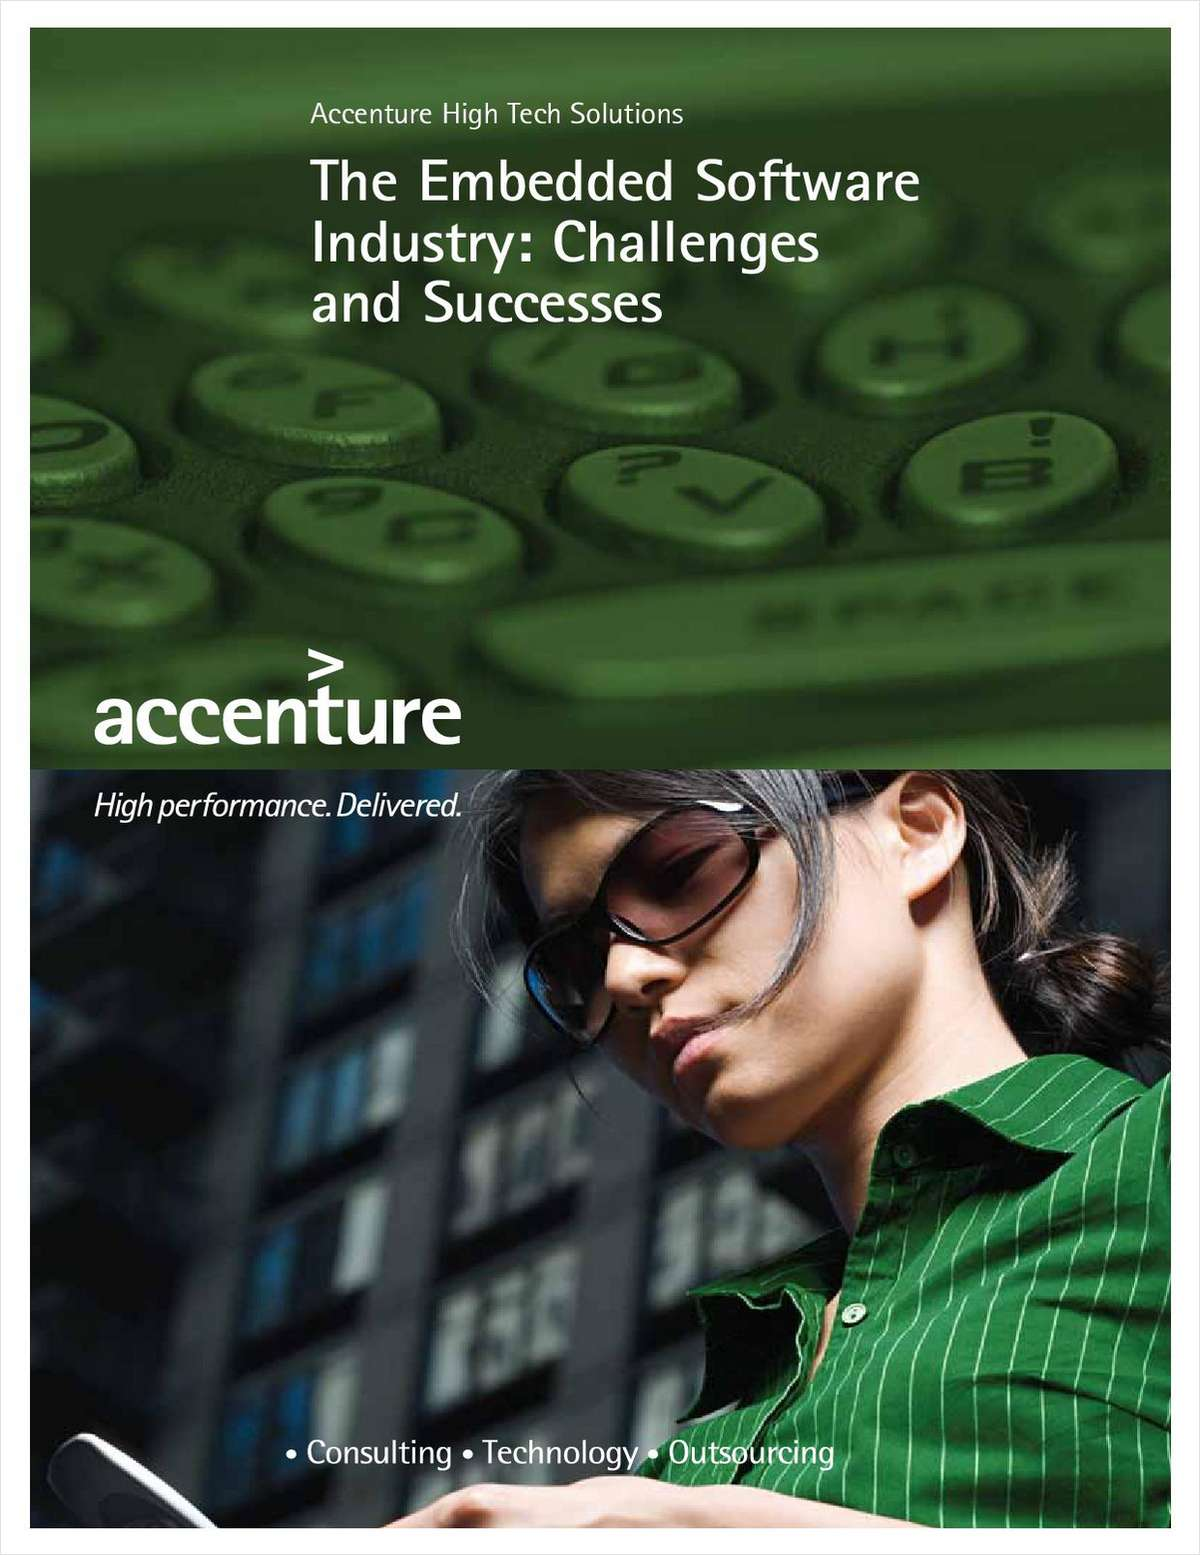 The Embedded Software Industry: Challenges and Successes